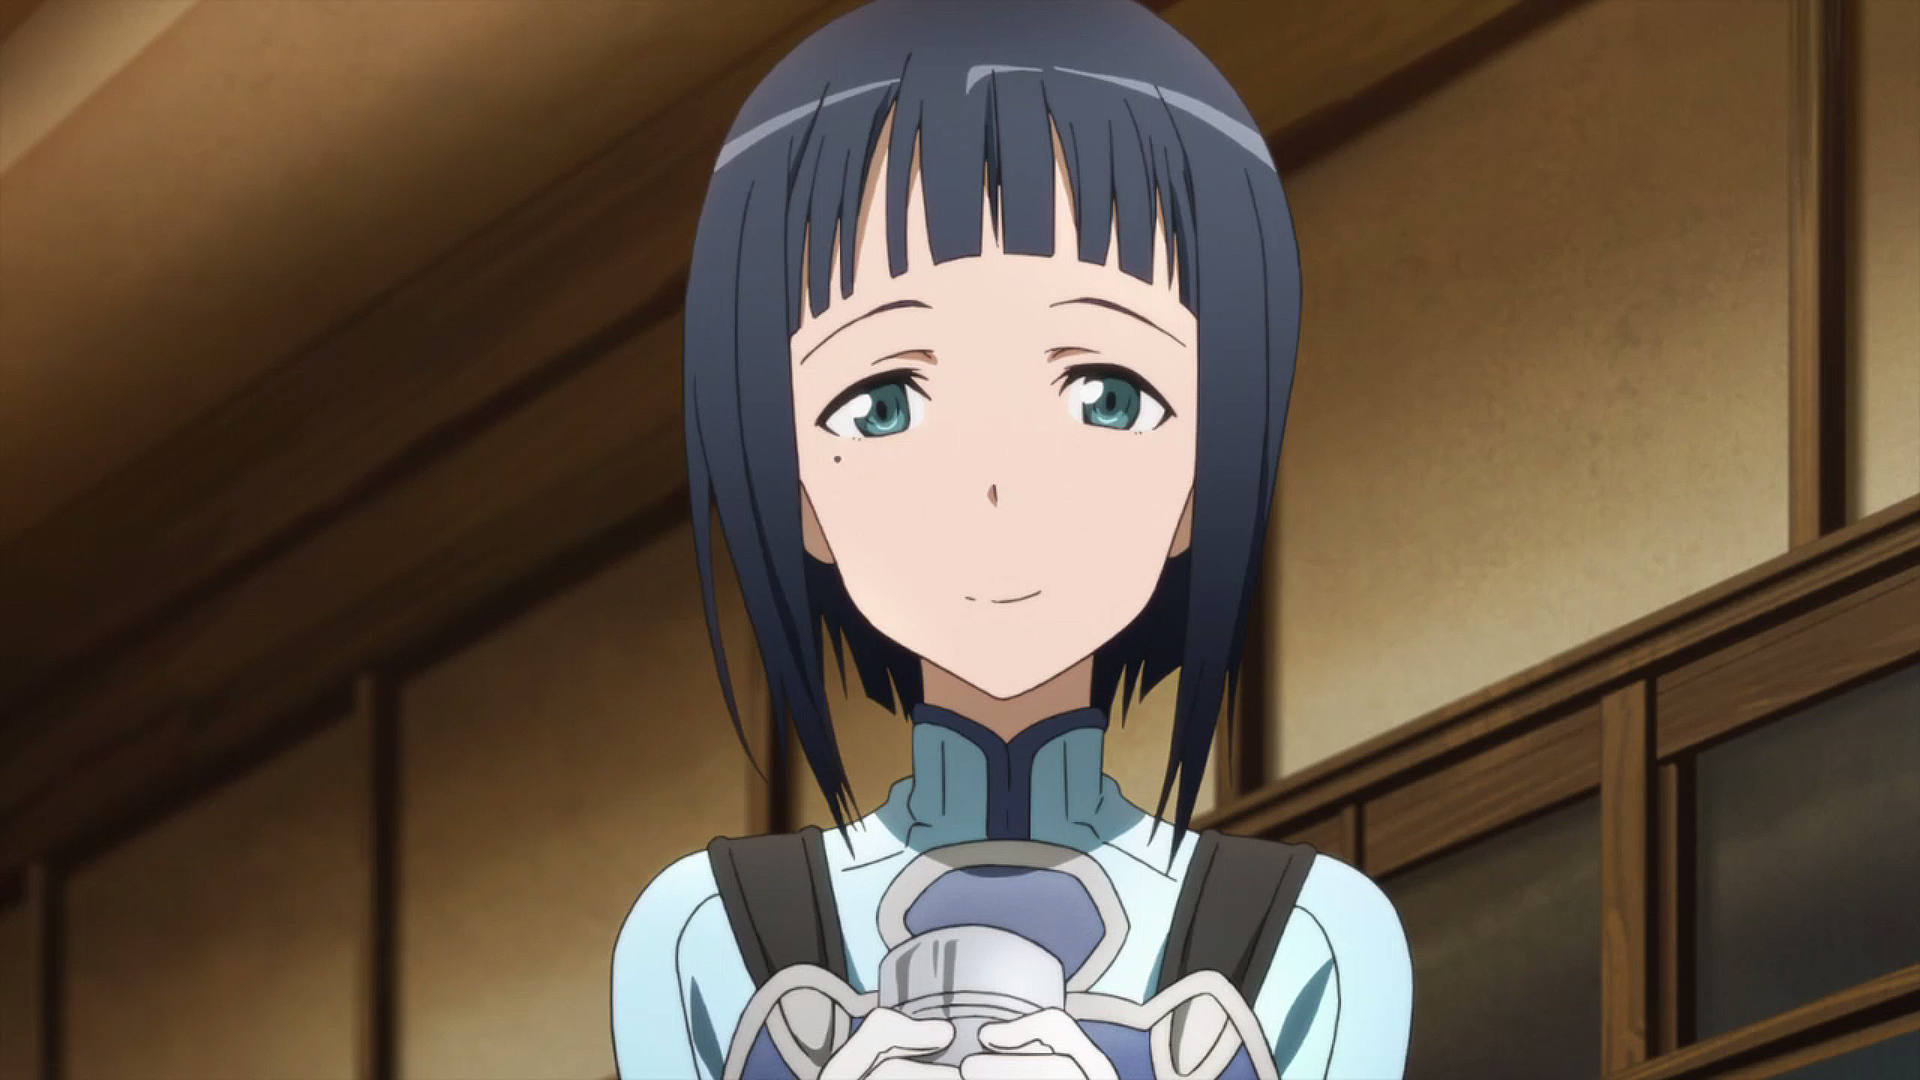 Anime girl with black hair and blue eyes with a sword